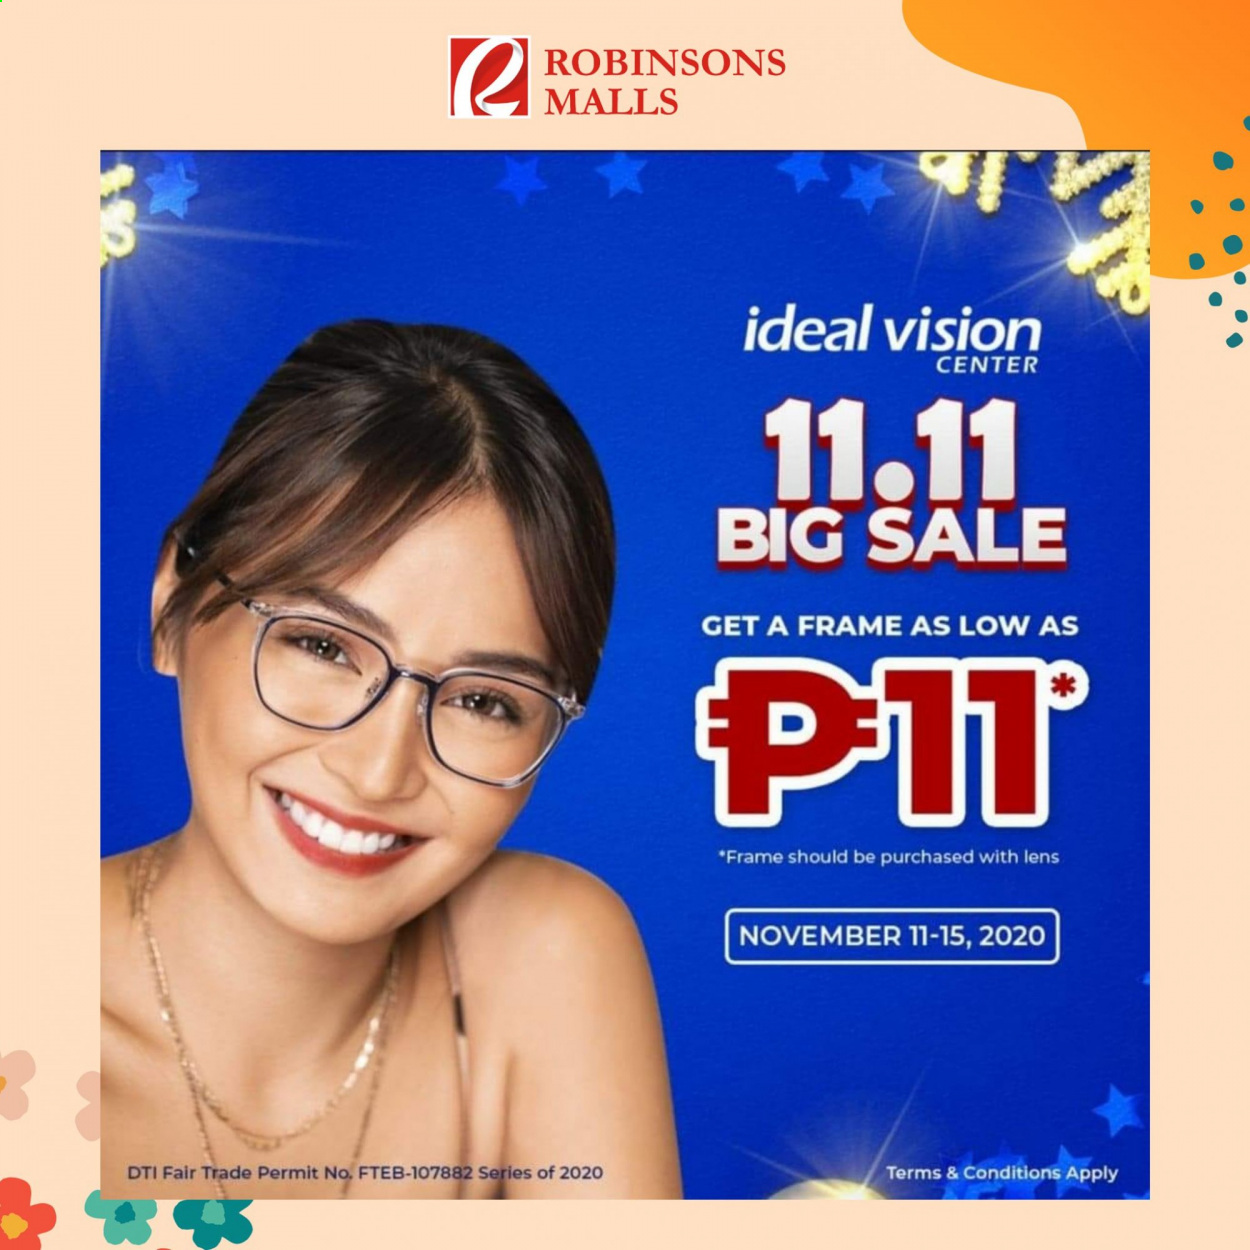 Robinsons Malls offer  - 11.11.2020 - 15.11.2020 - Sales products - lens. Page 1.